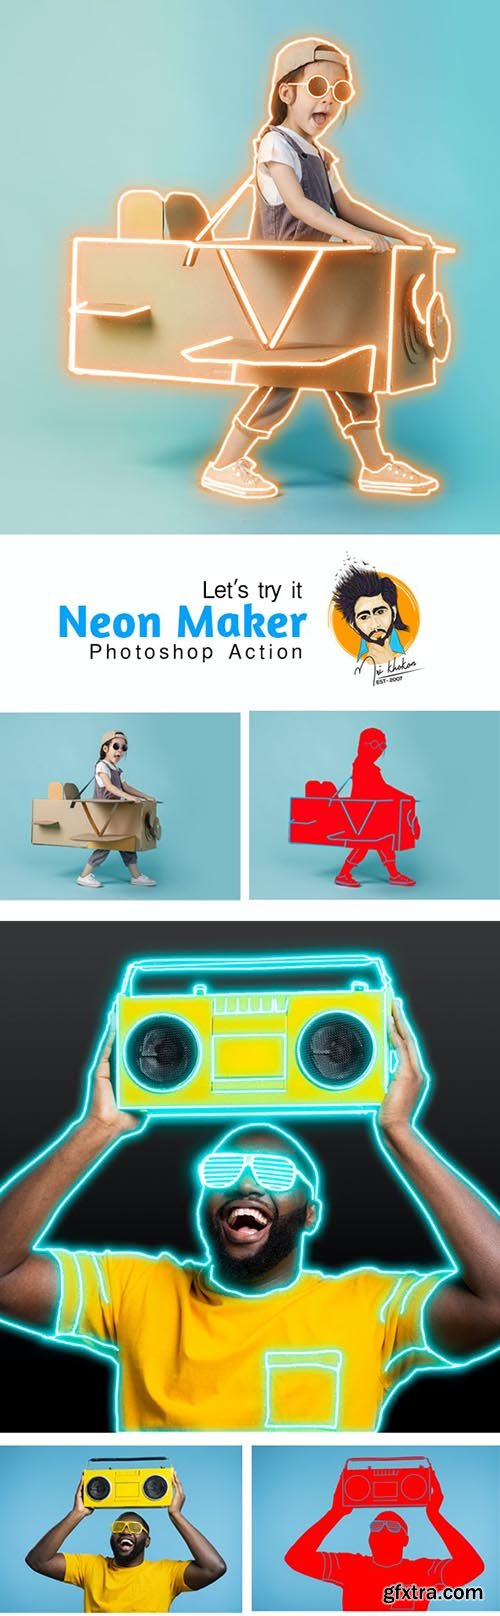 GraphicRiver - Neon Maker Photoshop Action 29732242